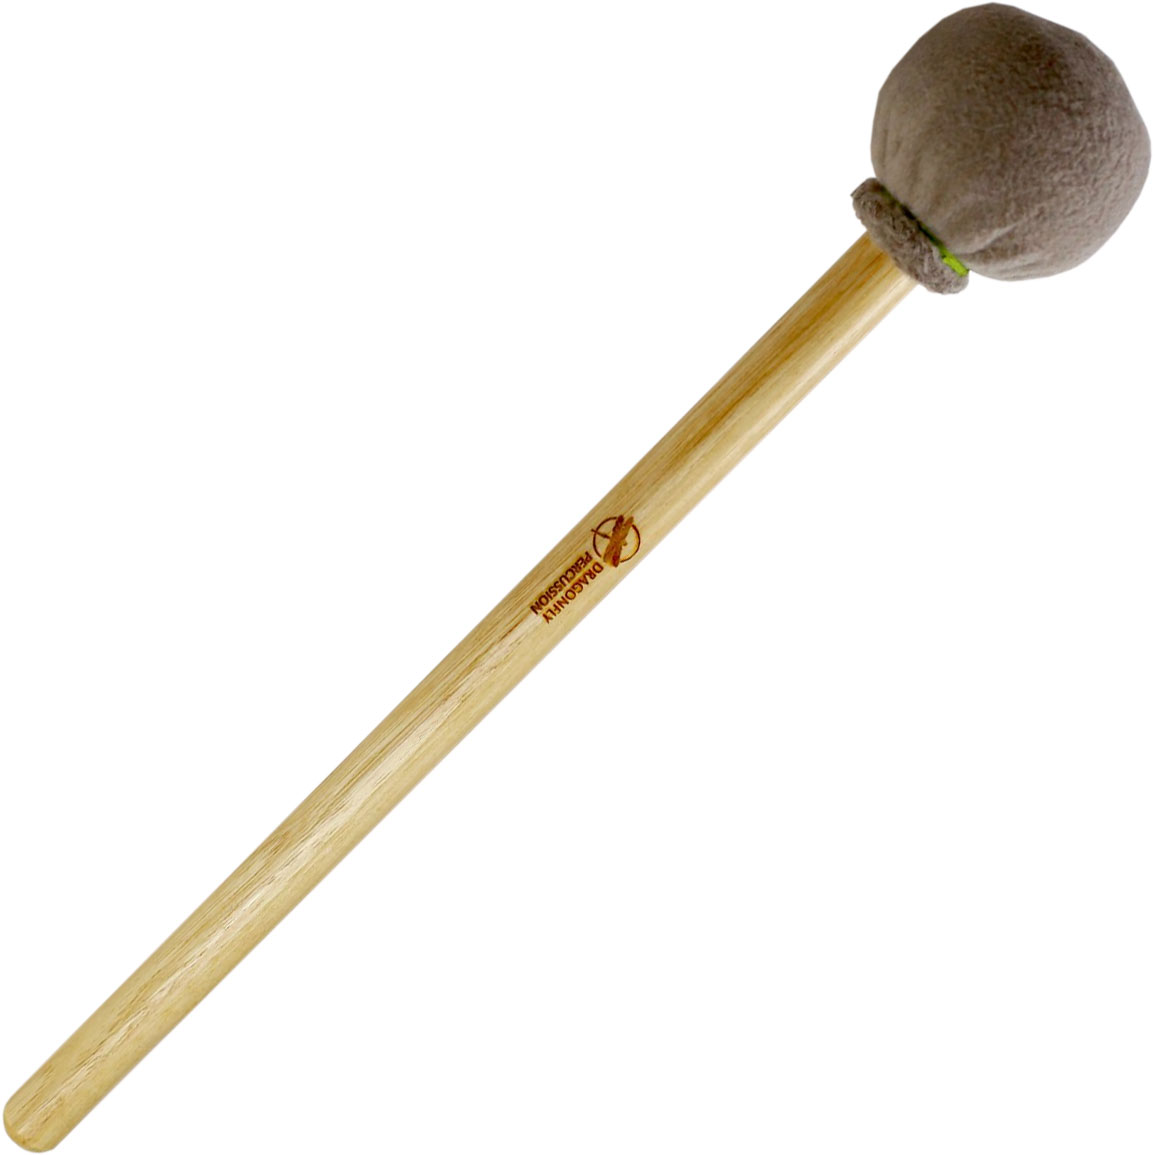 Dragonfly Percussion School Band Series General Bass Drum Mallet